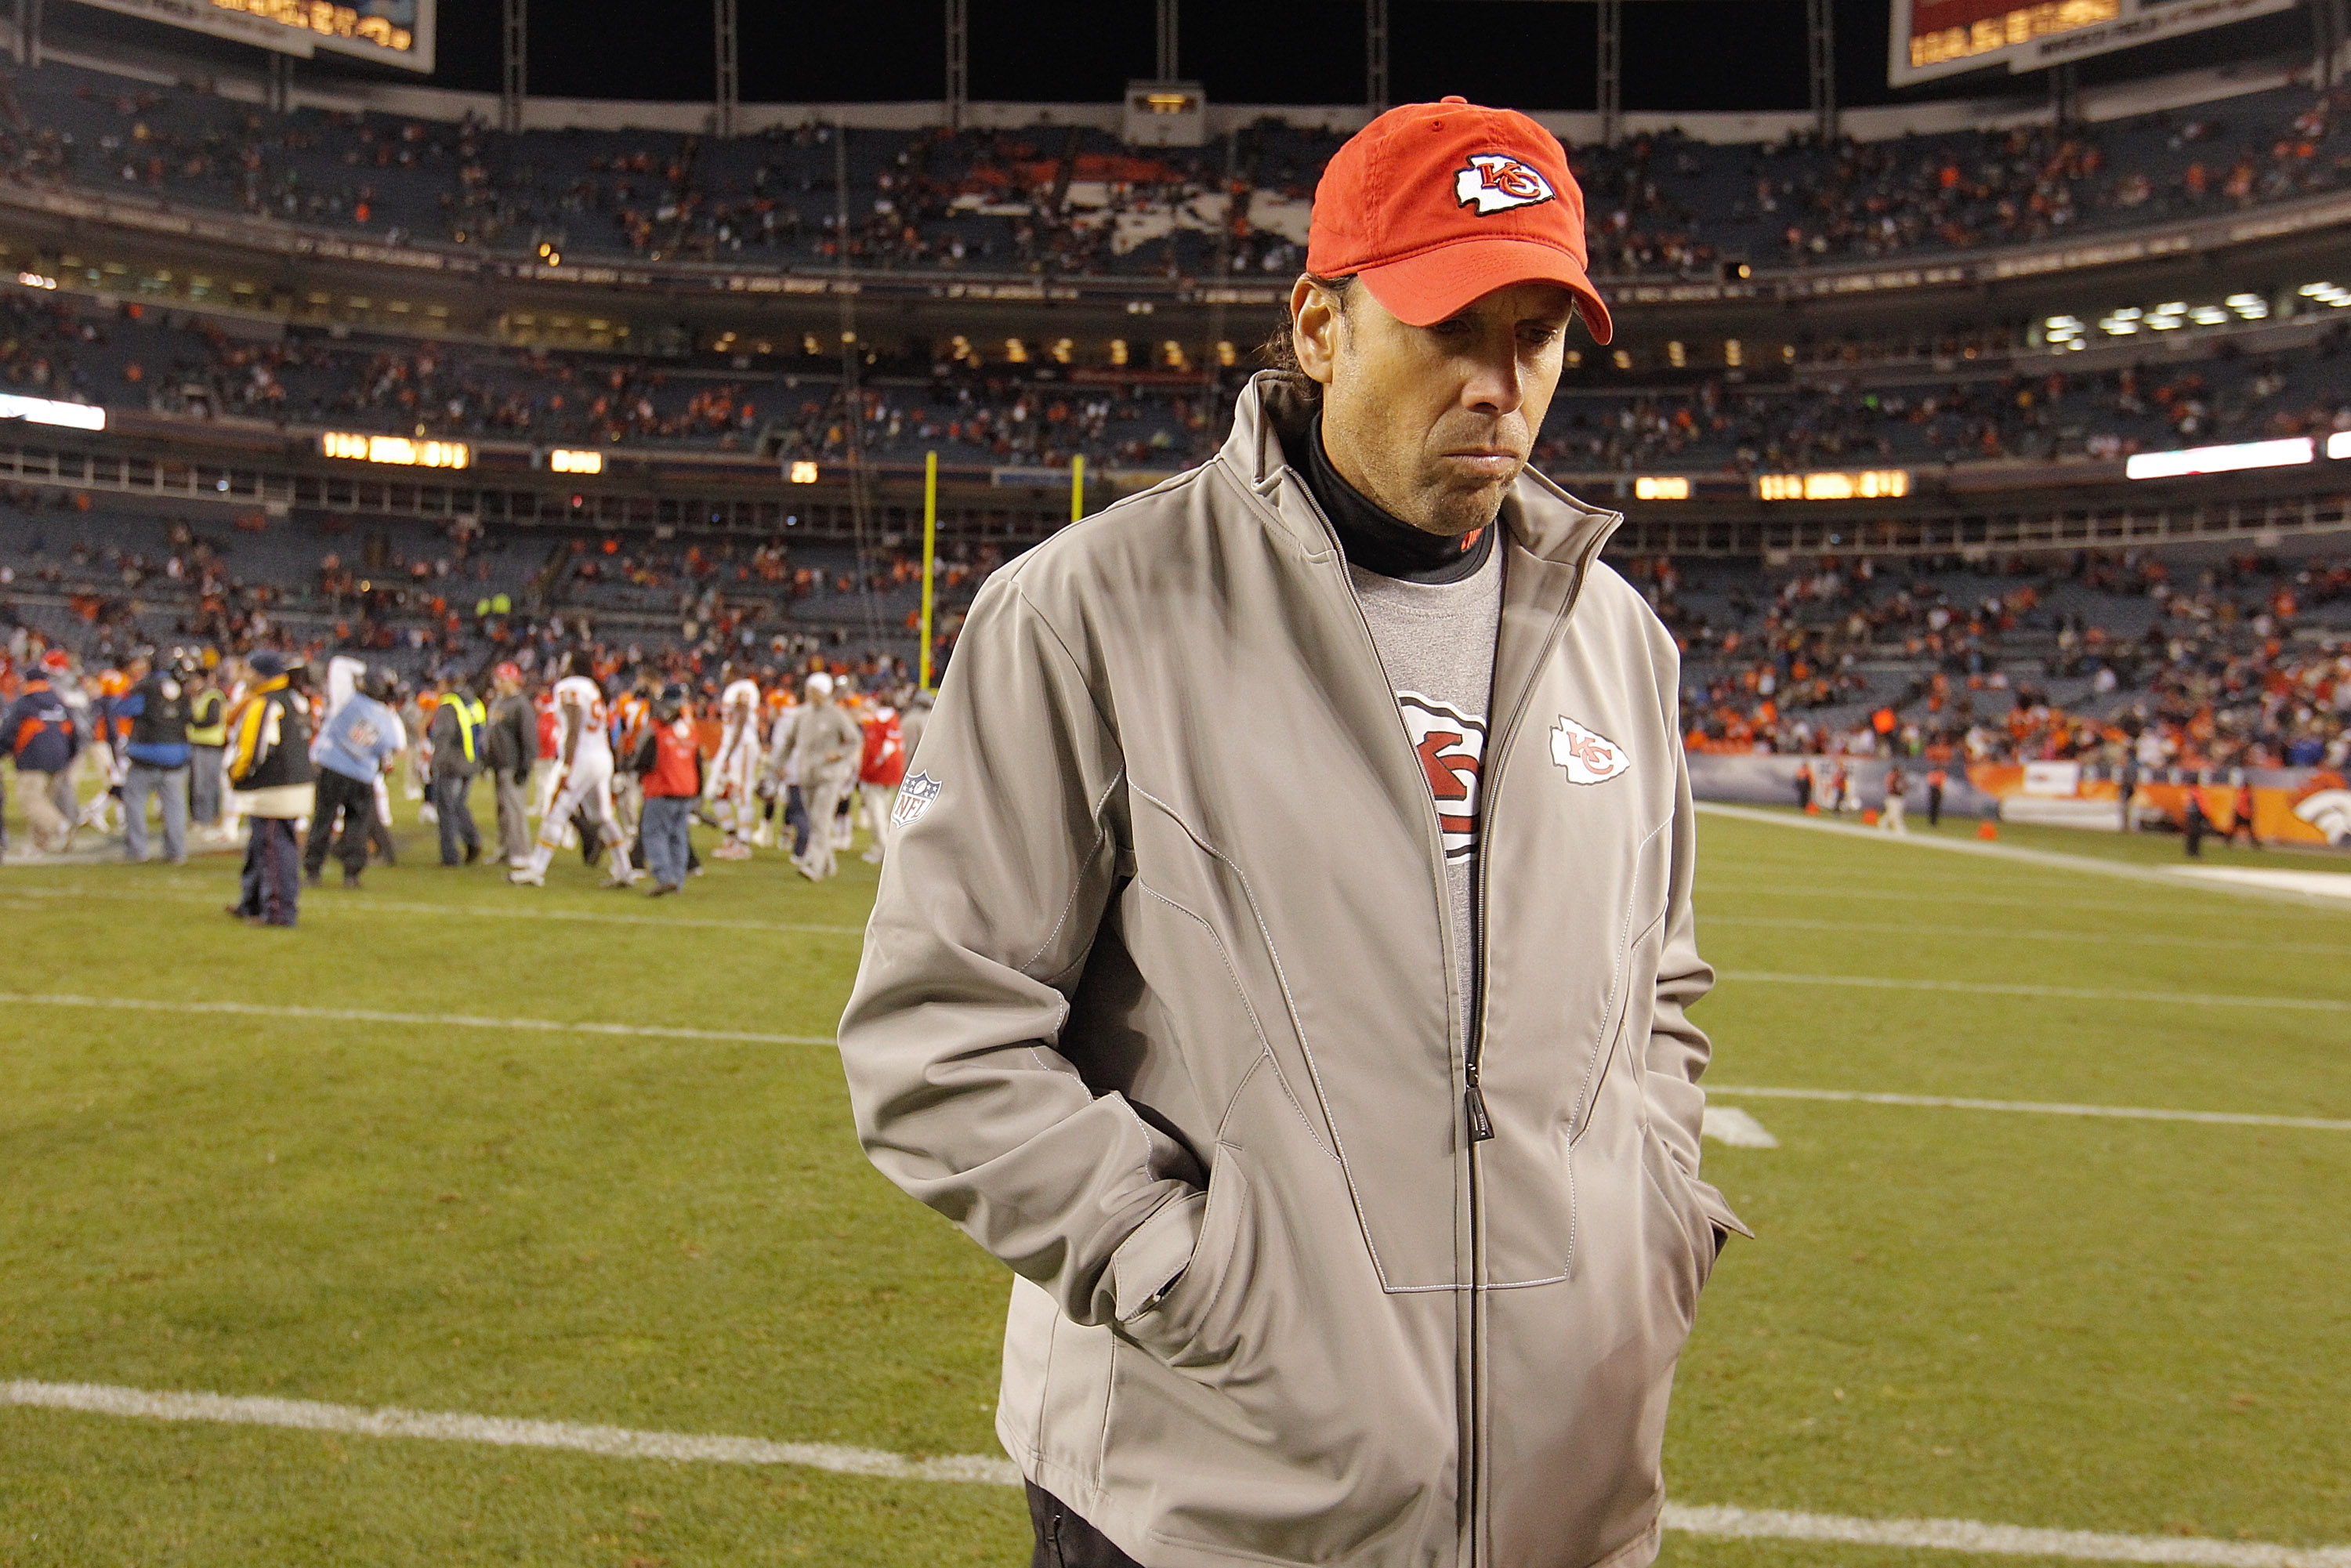 DENVER - NOVEMBER 14:  Head coach Todd Haley of the Kansas City Chiefs walks off the field following the Chiefs 49-29 loss to the Denver Broncos at INVESCO Field at Mile High on November 14, 2010 in Denver, Colorado. (Photo by Justin Edmonds/Getty Images)